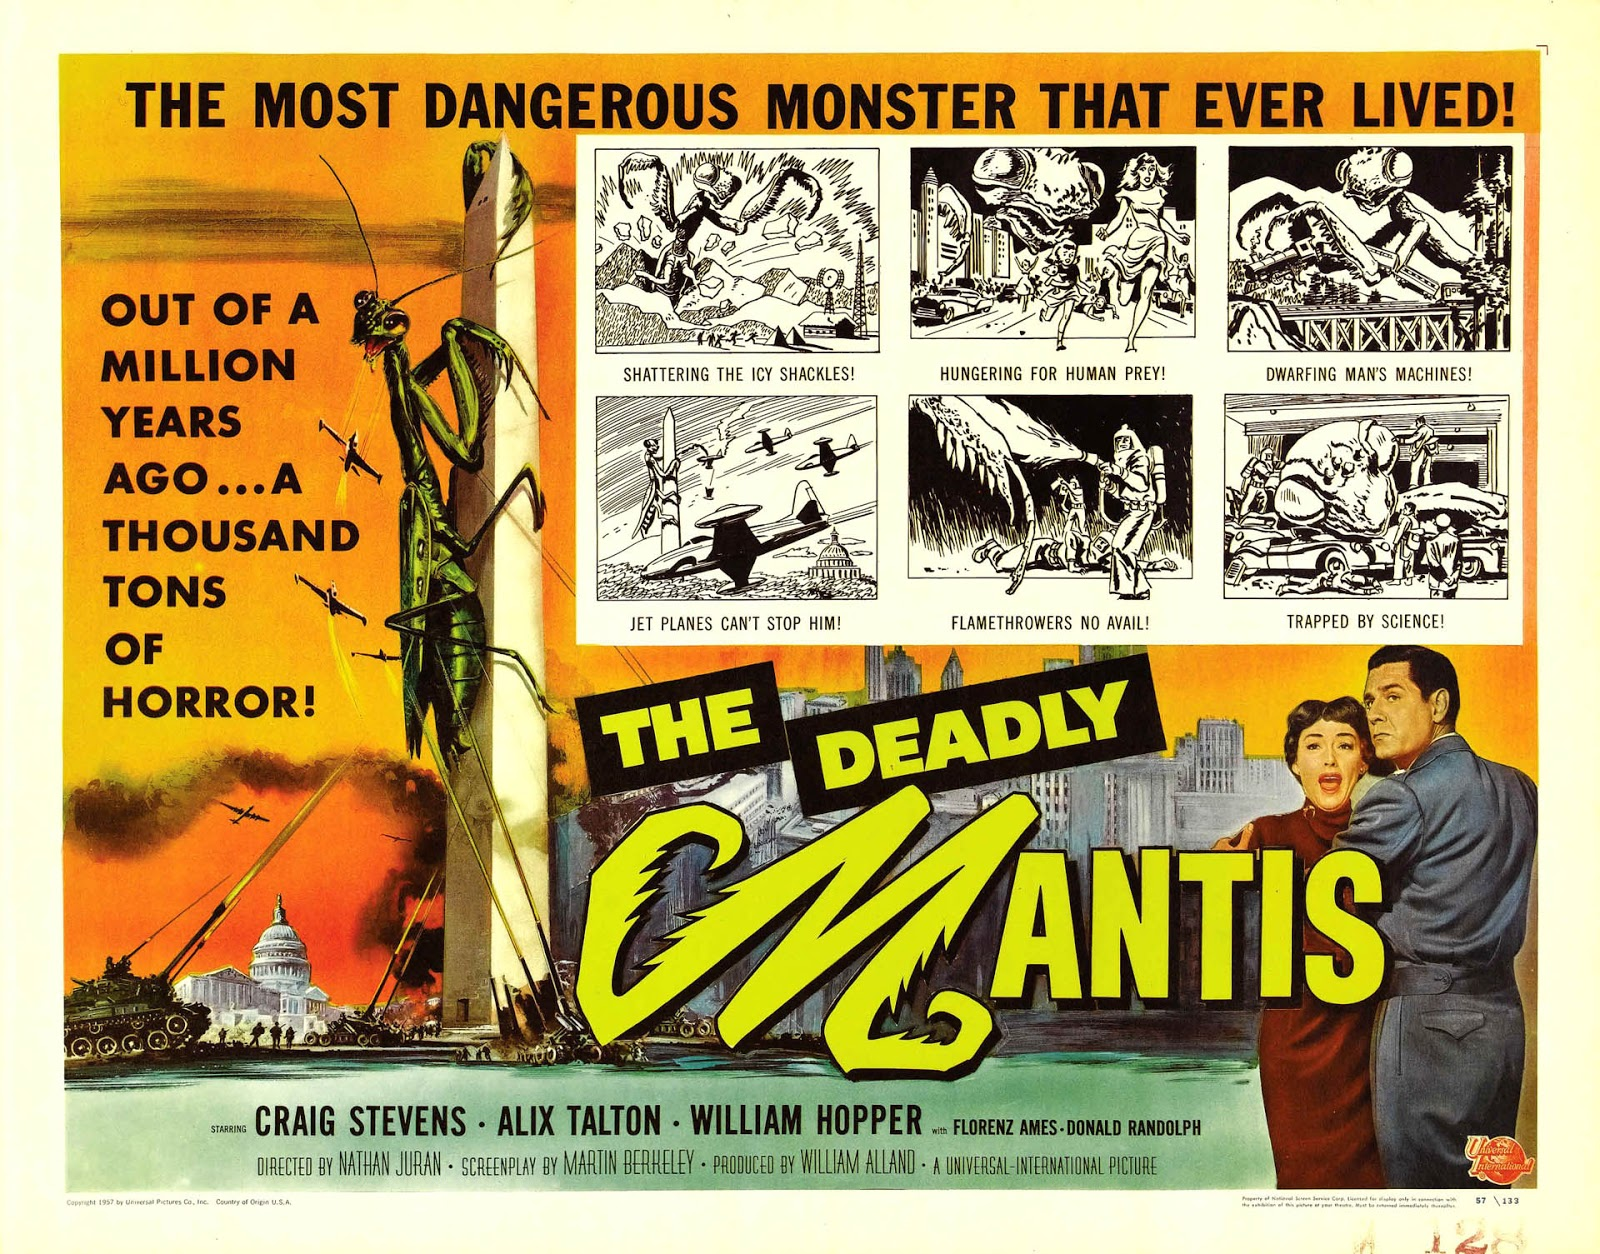 Watch the deadly mantis 1957 free online